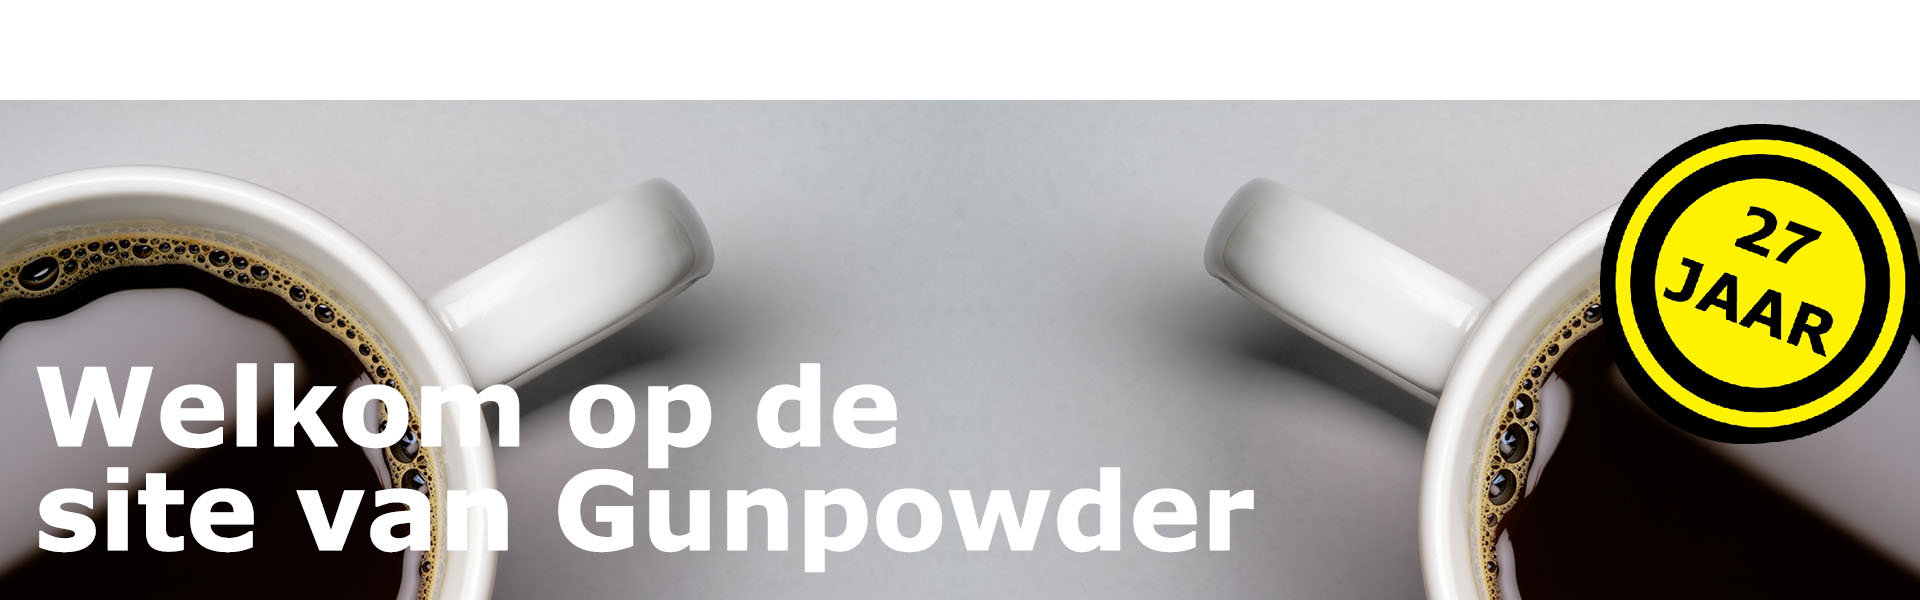 Gunpowder. Communicatie- en mediaproducties.